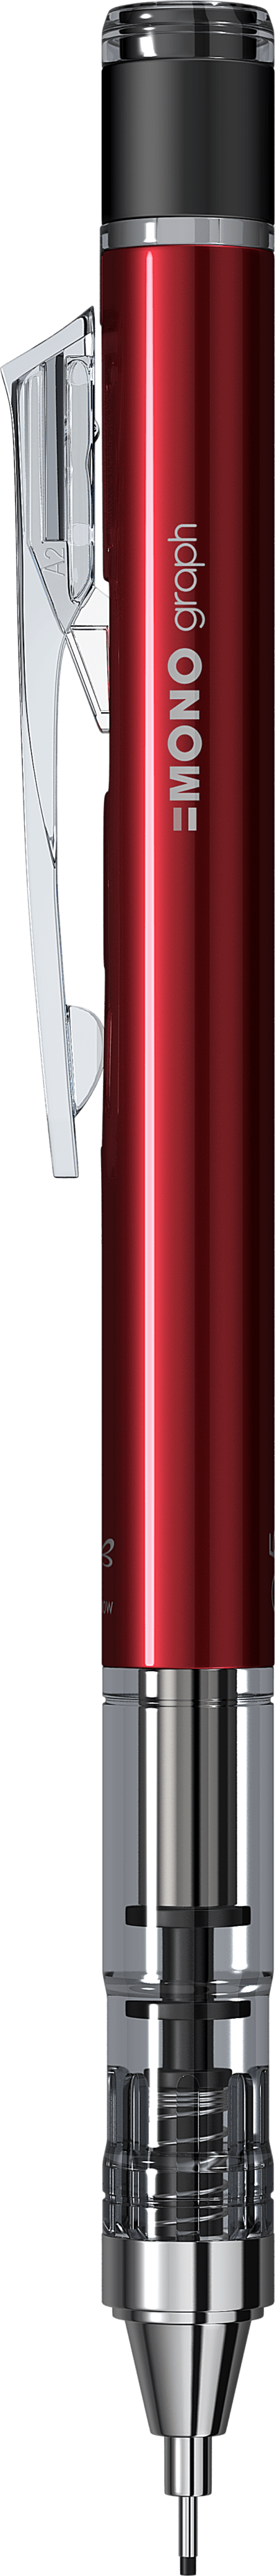 Red Creion mecanic 0.5 mm - Tombow 5